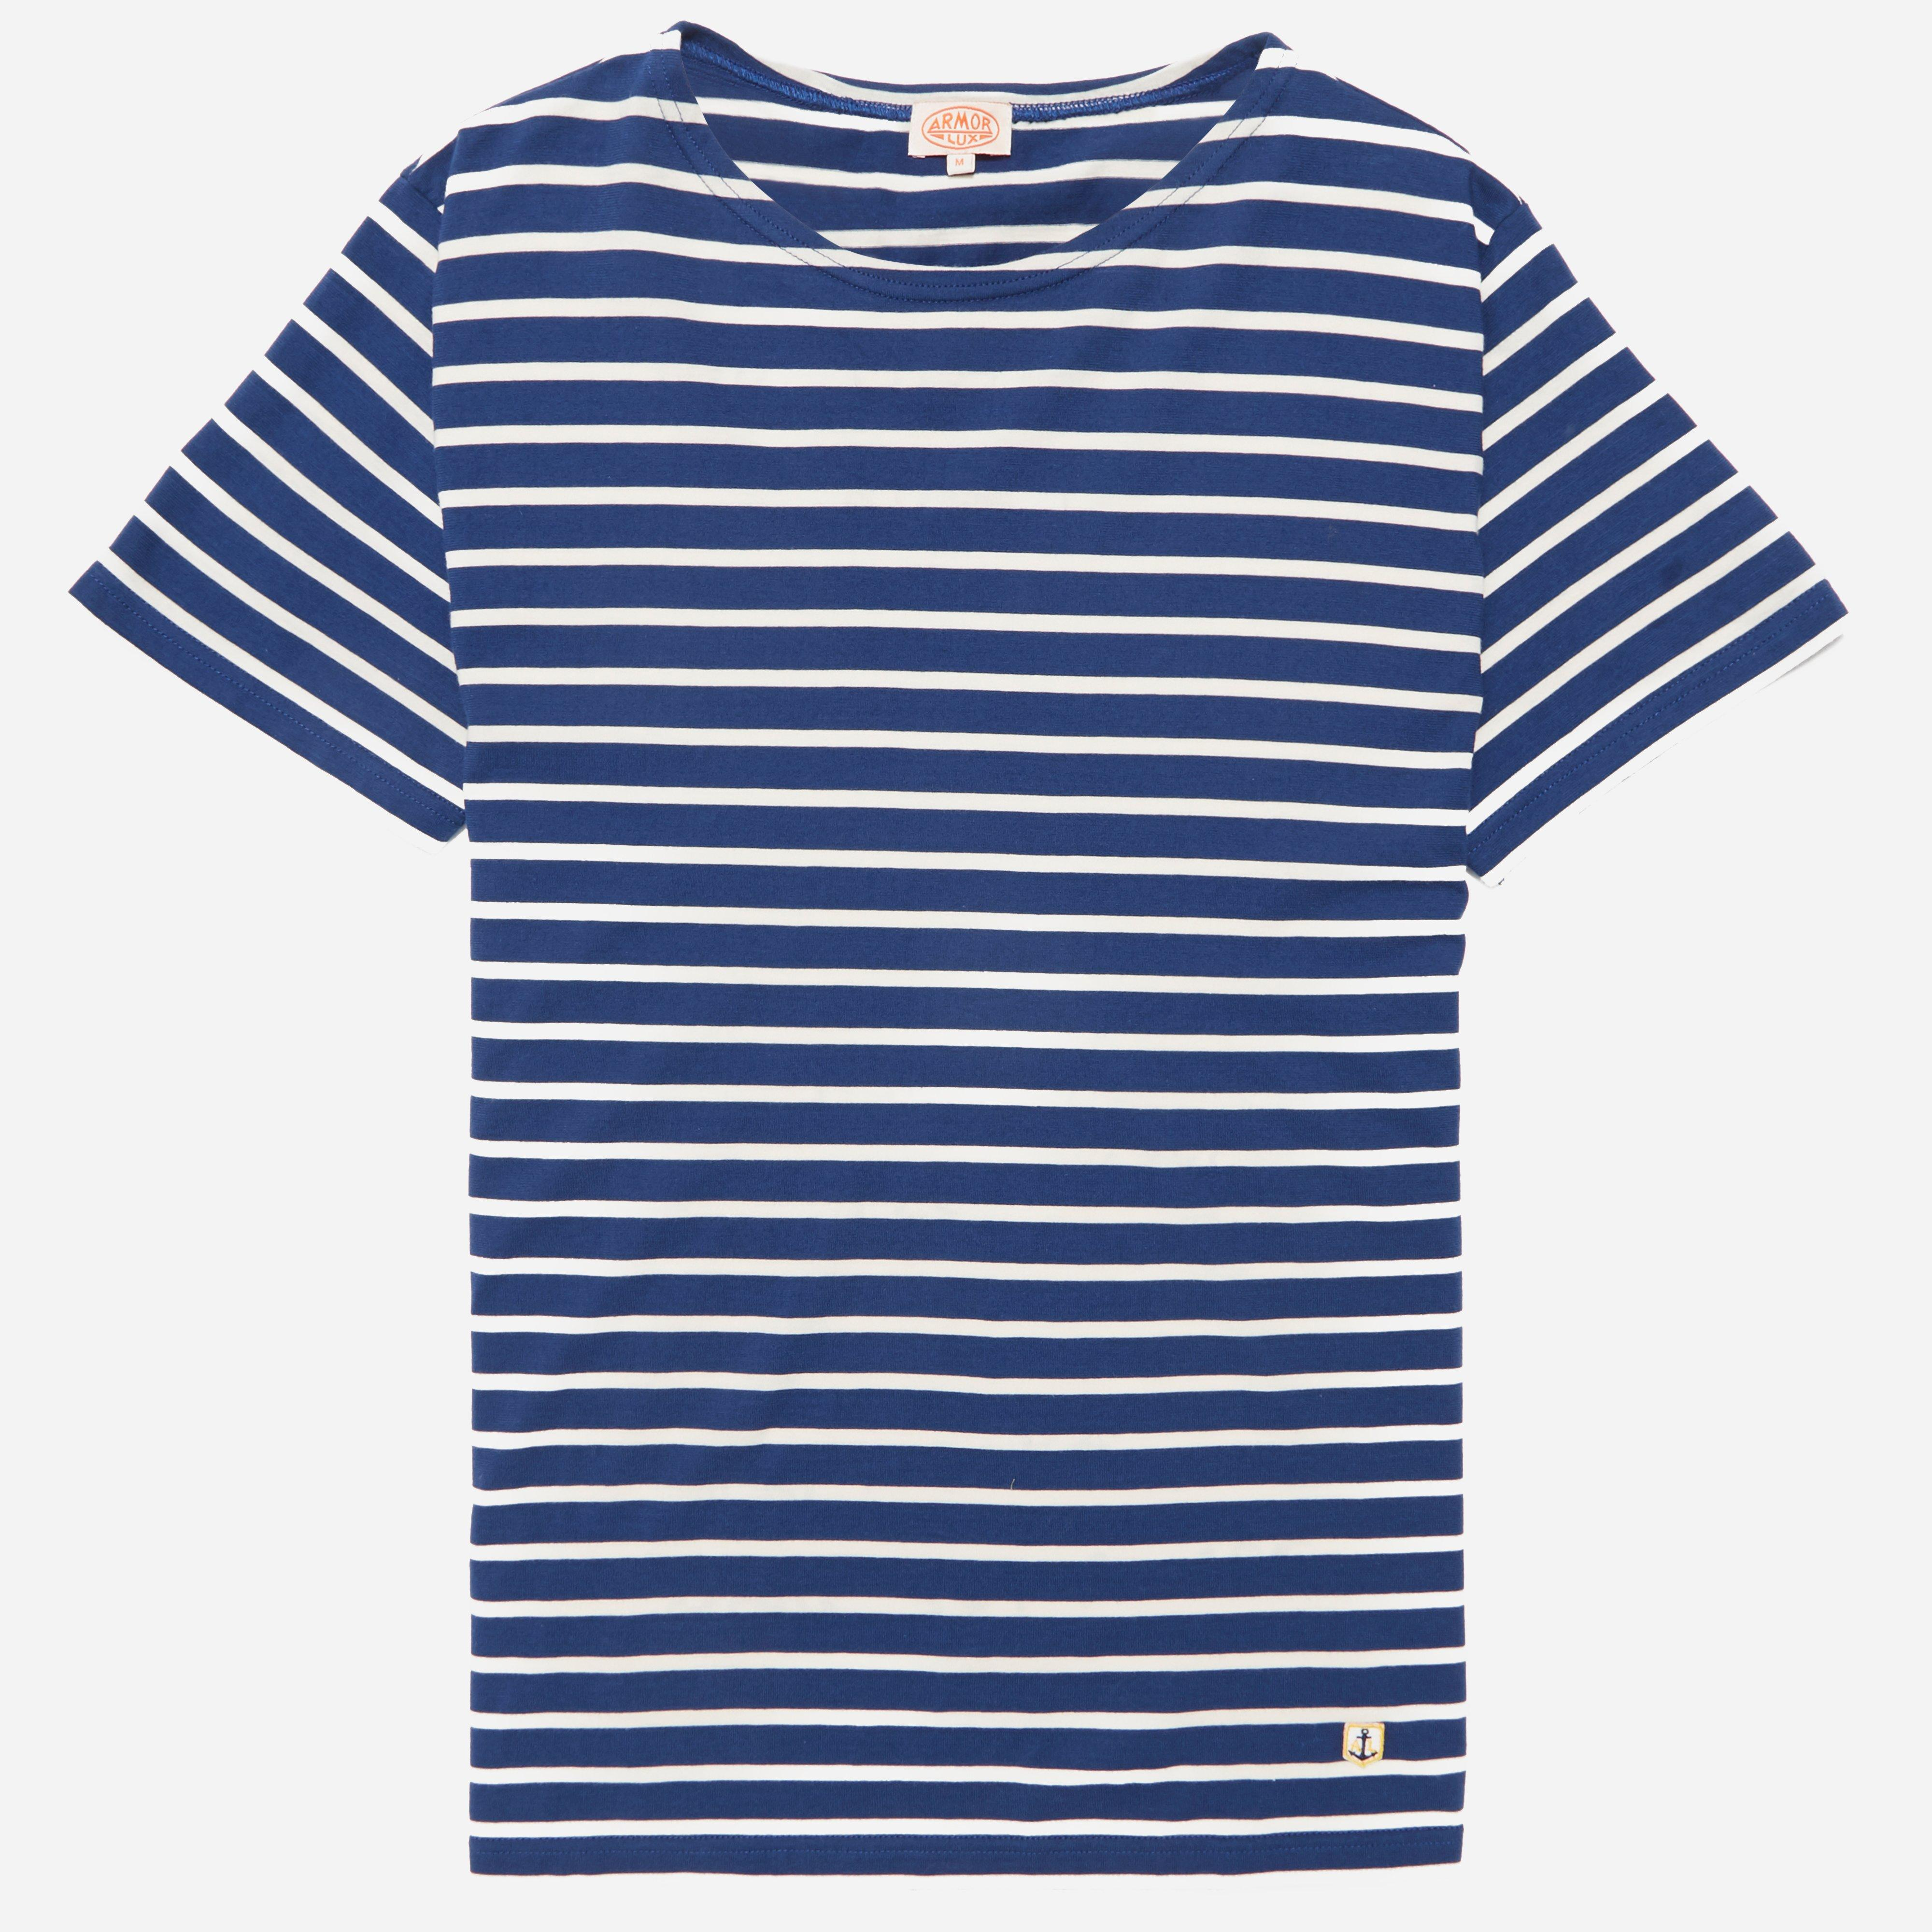 Armor Lux 73842 Classic Short Sleeve T-shirt